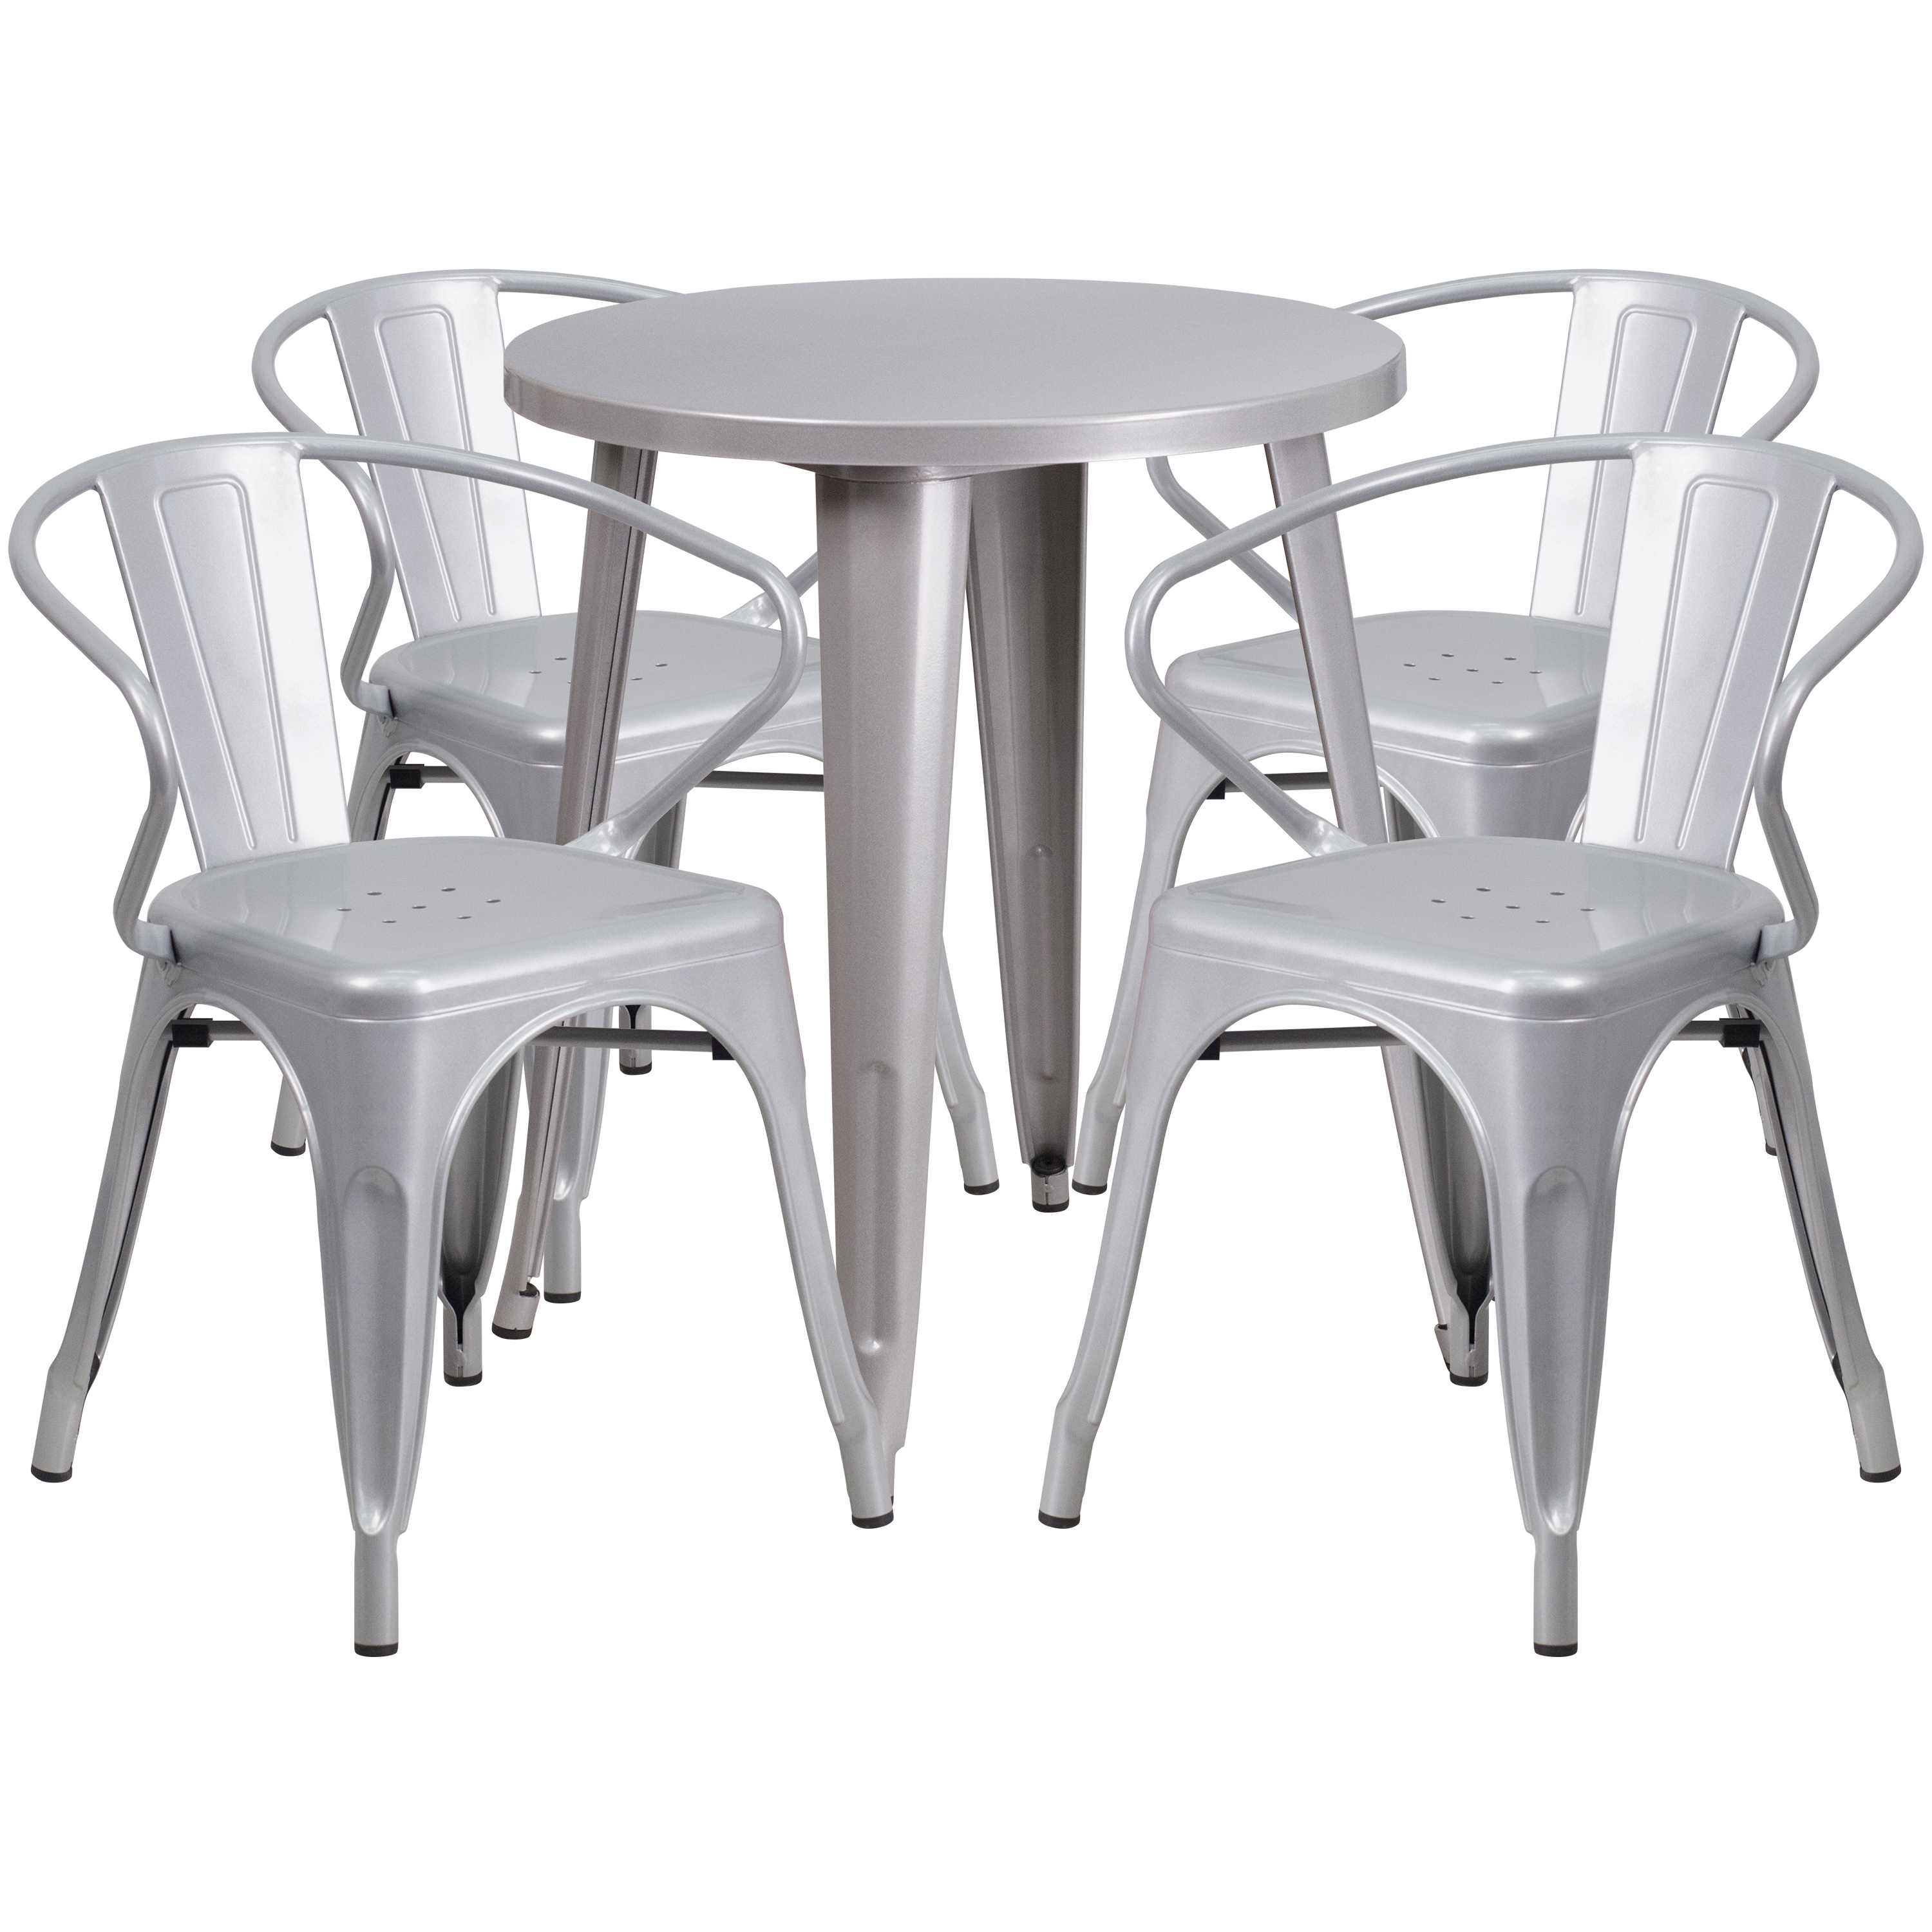 """Flash Furniture 24"""" Round Metal Indoor-Outdoor Table Set with 4 Arm Chairs, Multiple Colors"""